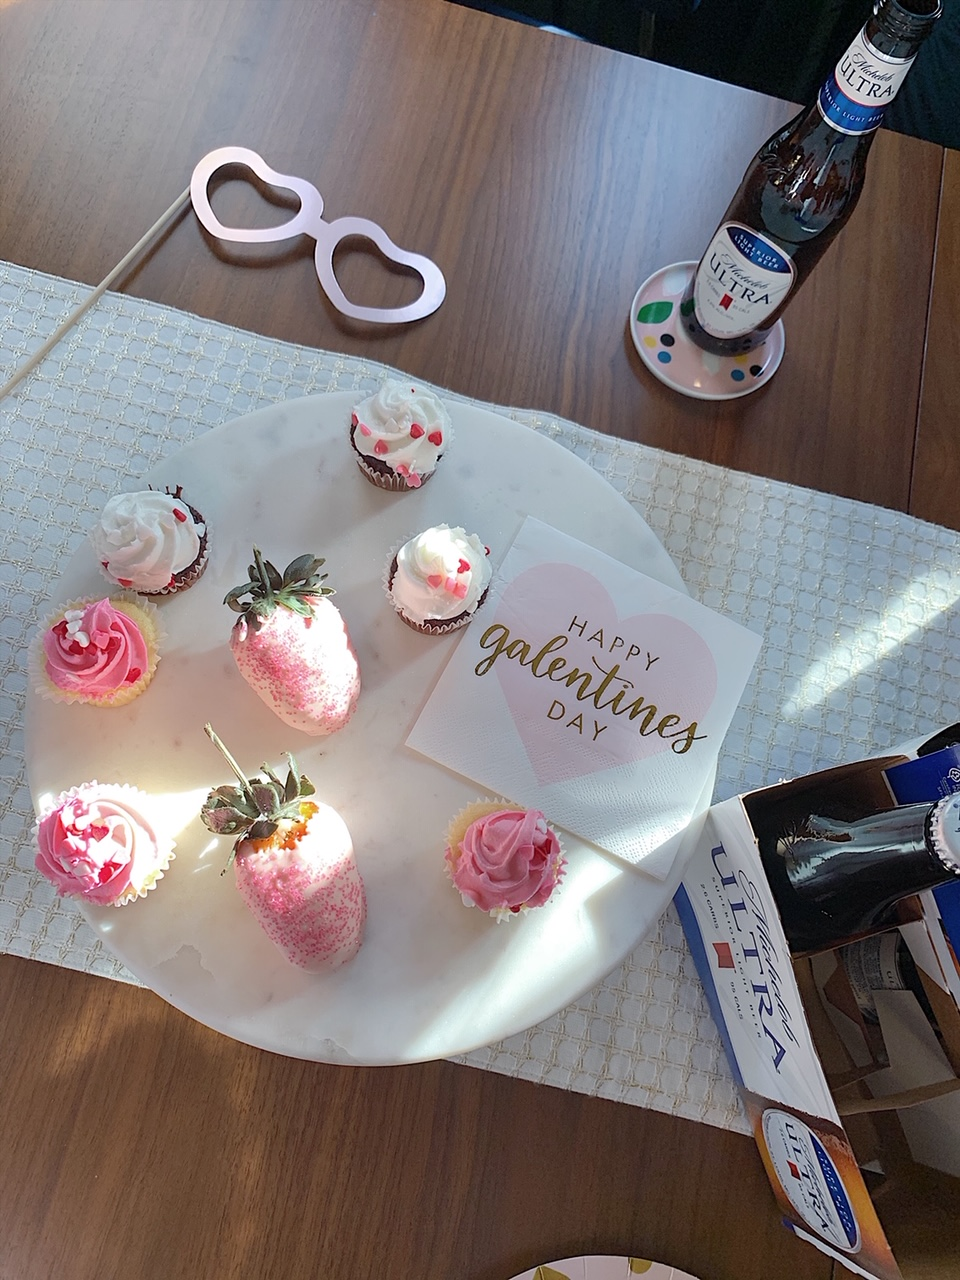 Celebrating Galentine's Day with Michelob ULTRA